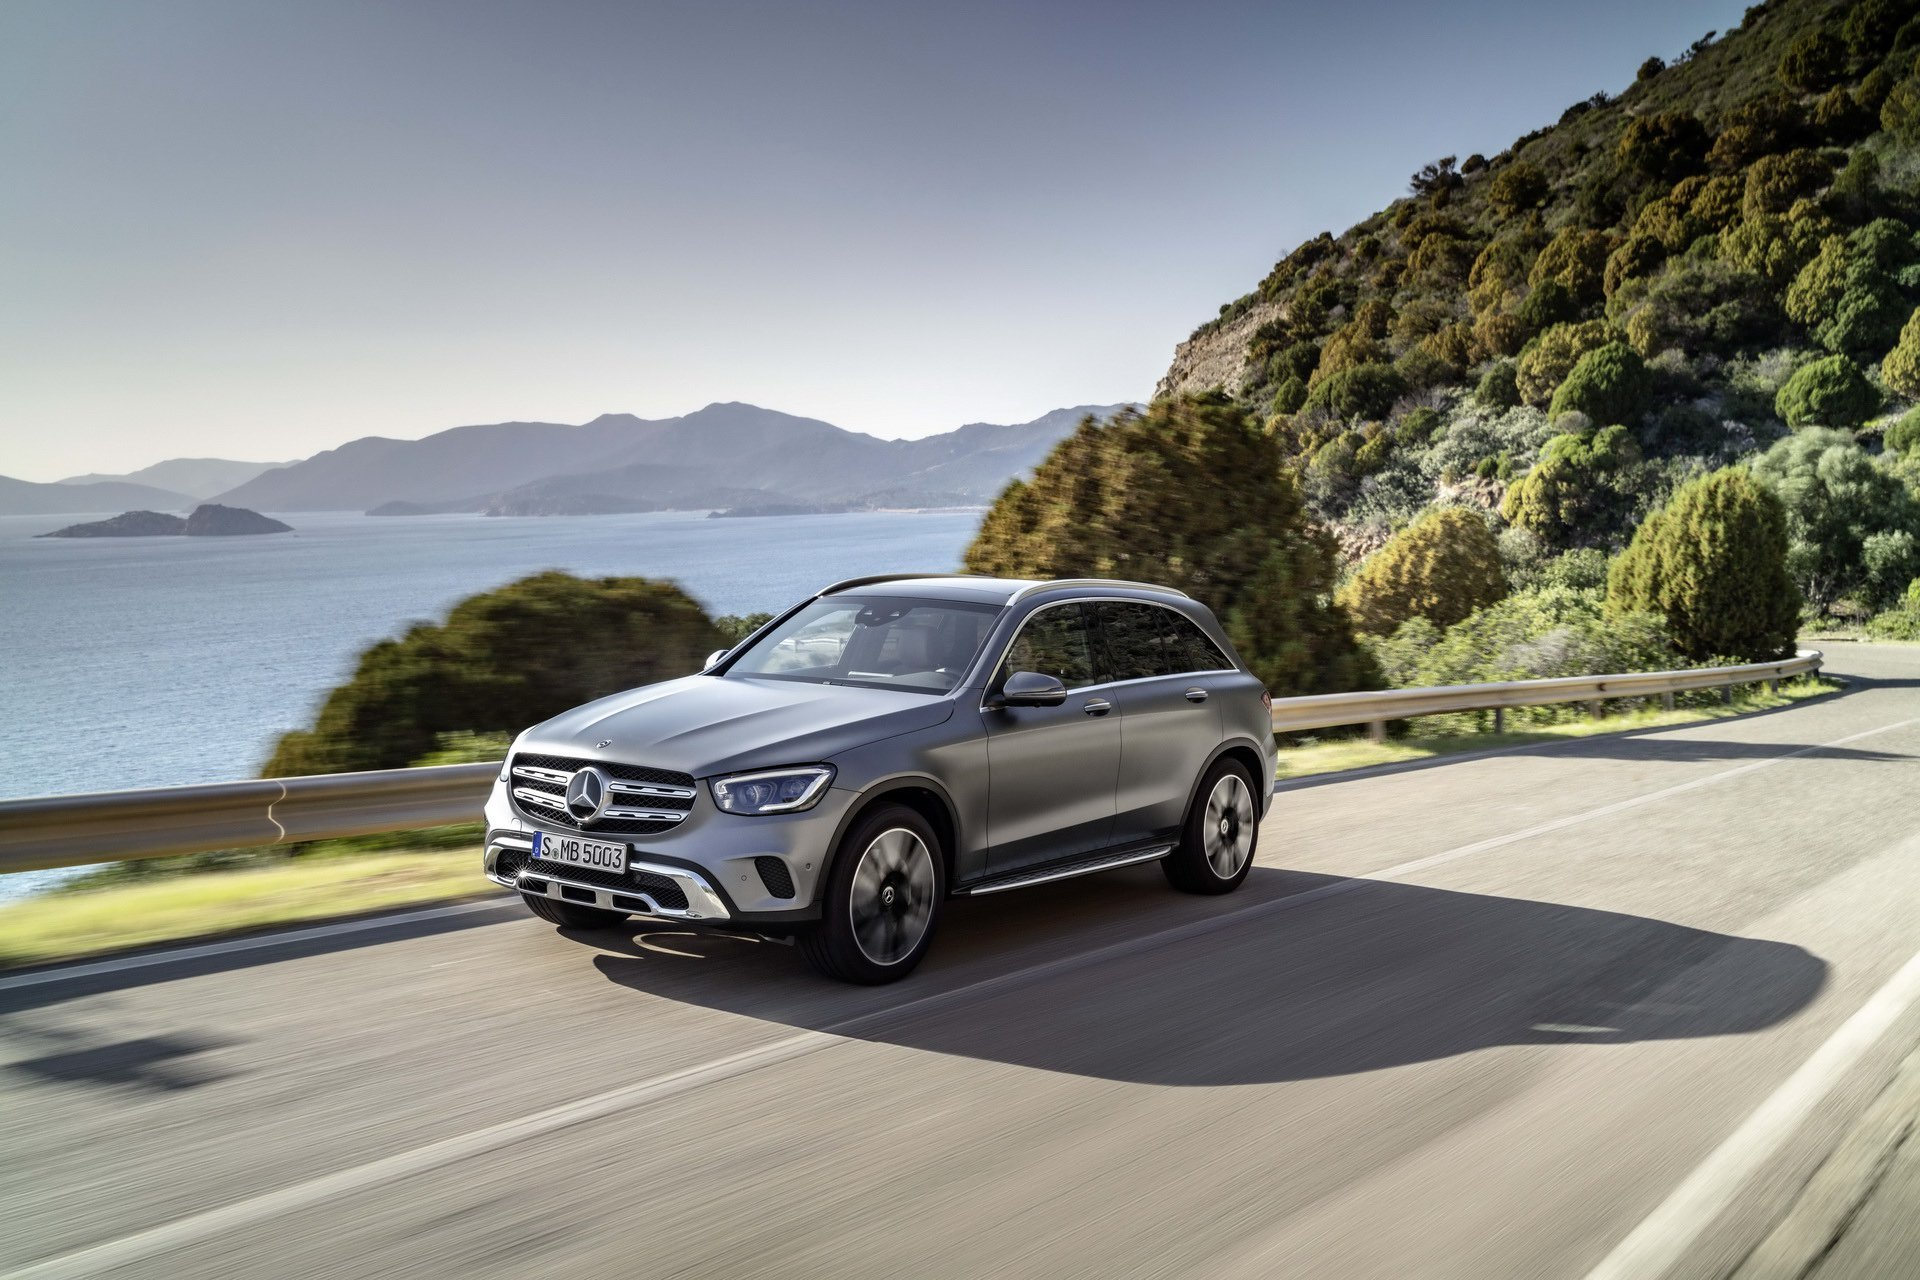 New 2019 Mercedes-Benz AMG GLC 63 S AMG GLC 63 S for sale $81,800 at M and V Leasing in Brooklyn NY 11223 1